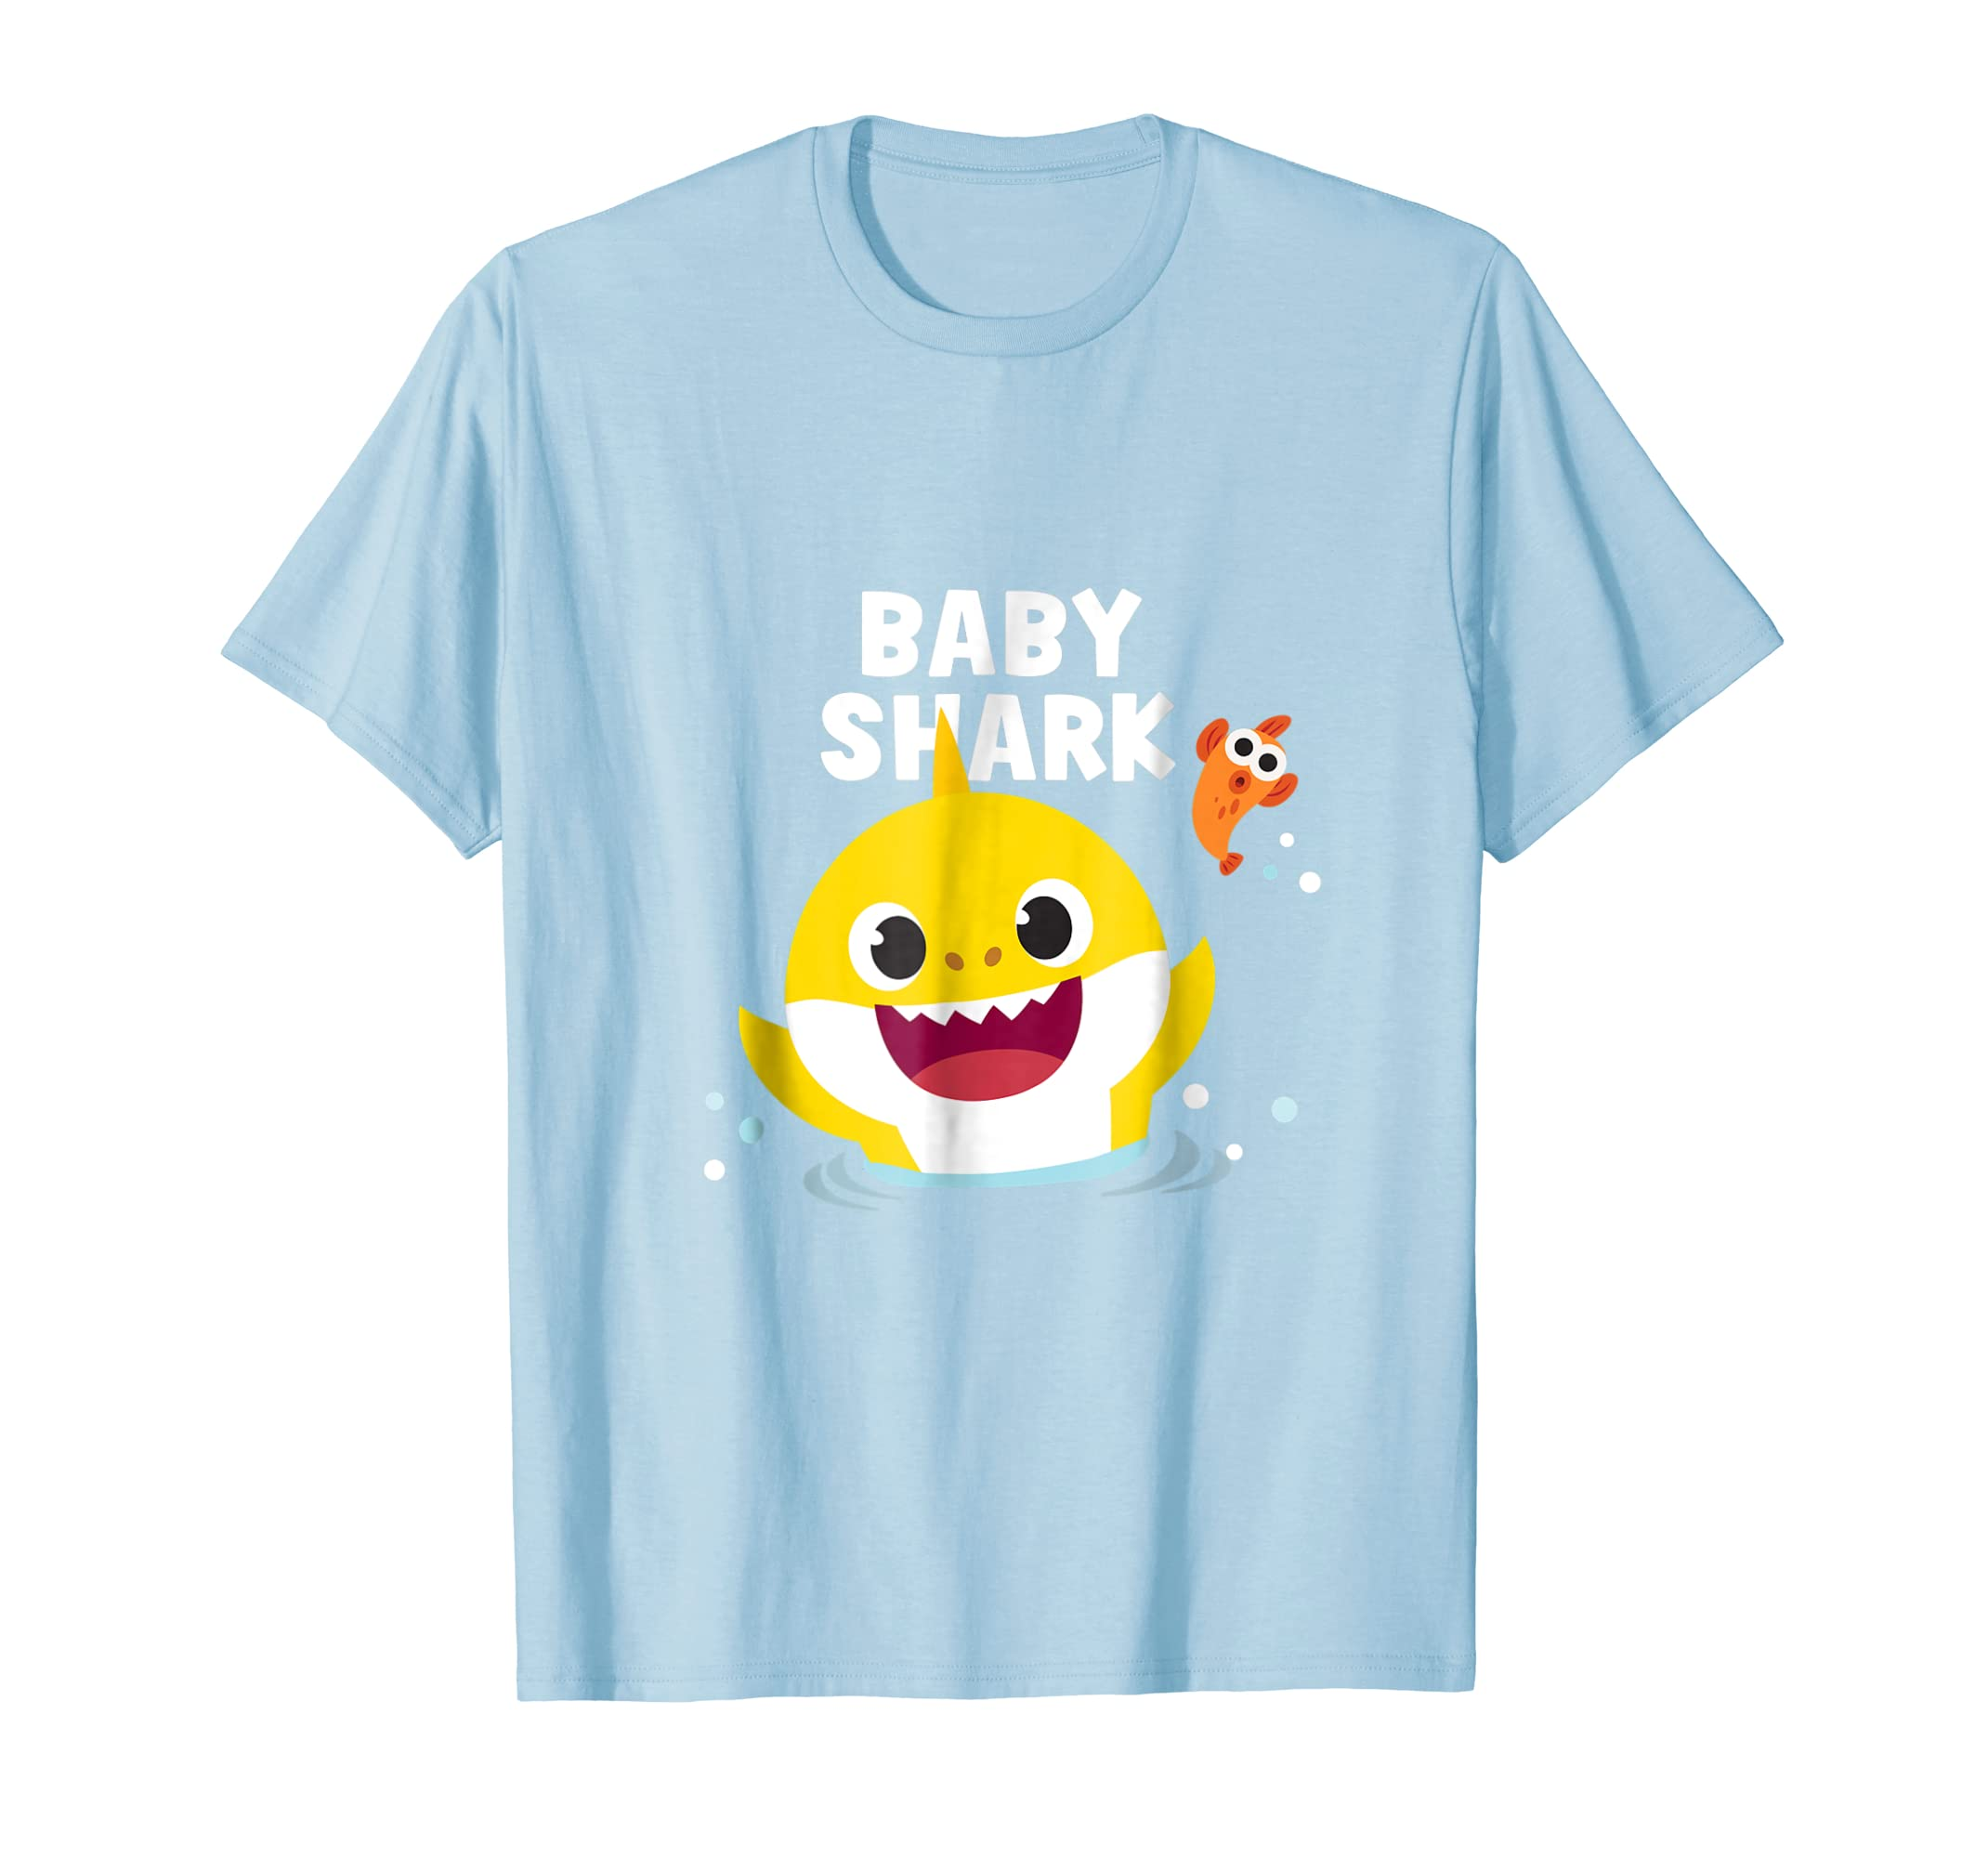 e1f89124 Amazon.com: Pinkfong Baby Shark t-shirt with text: Clothing